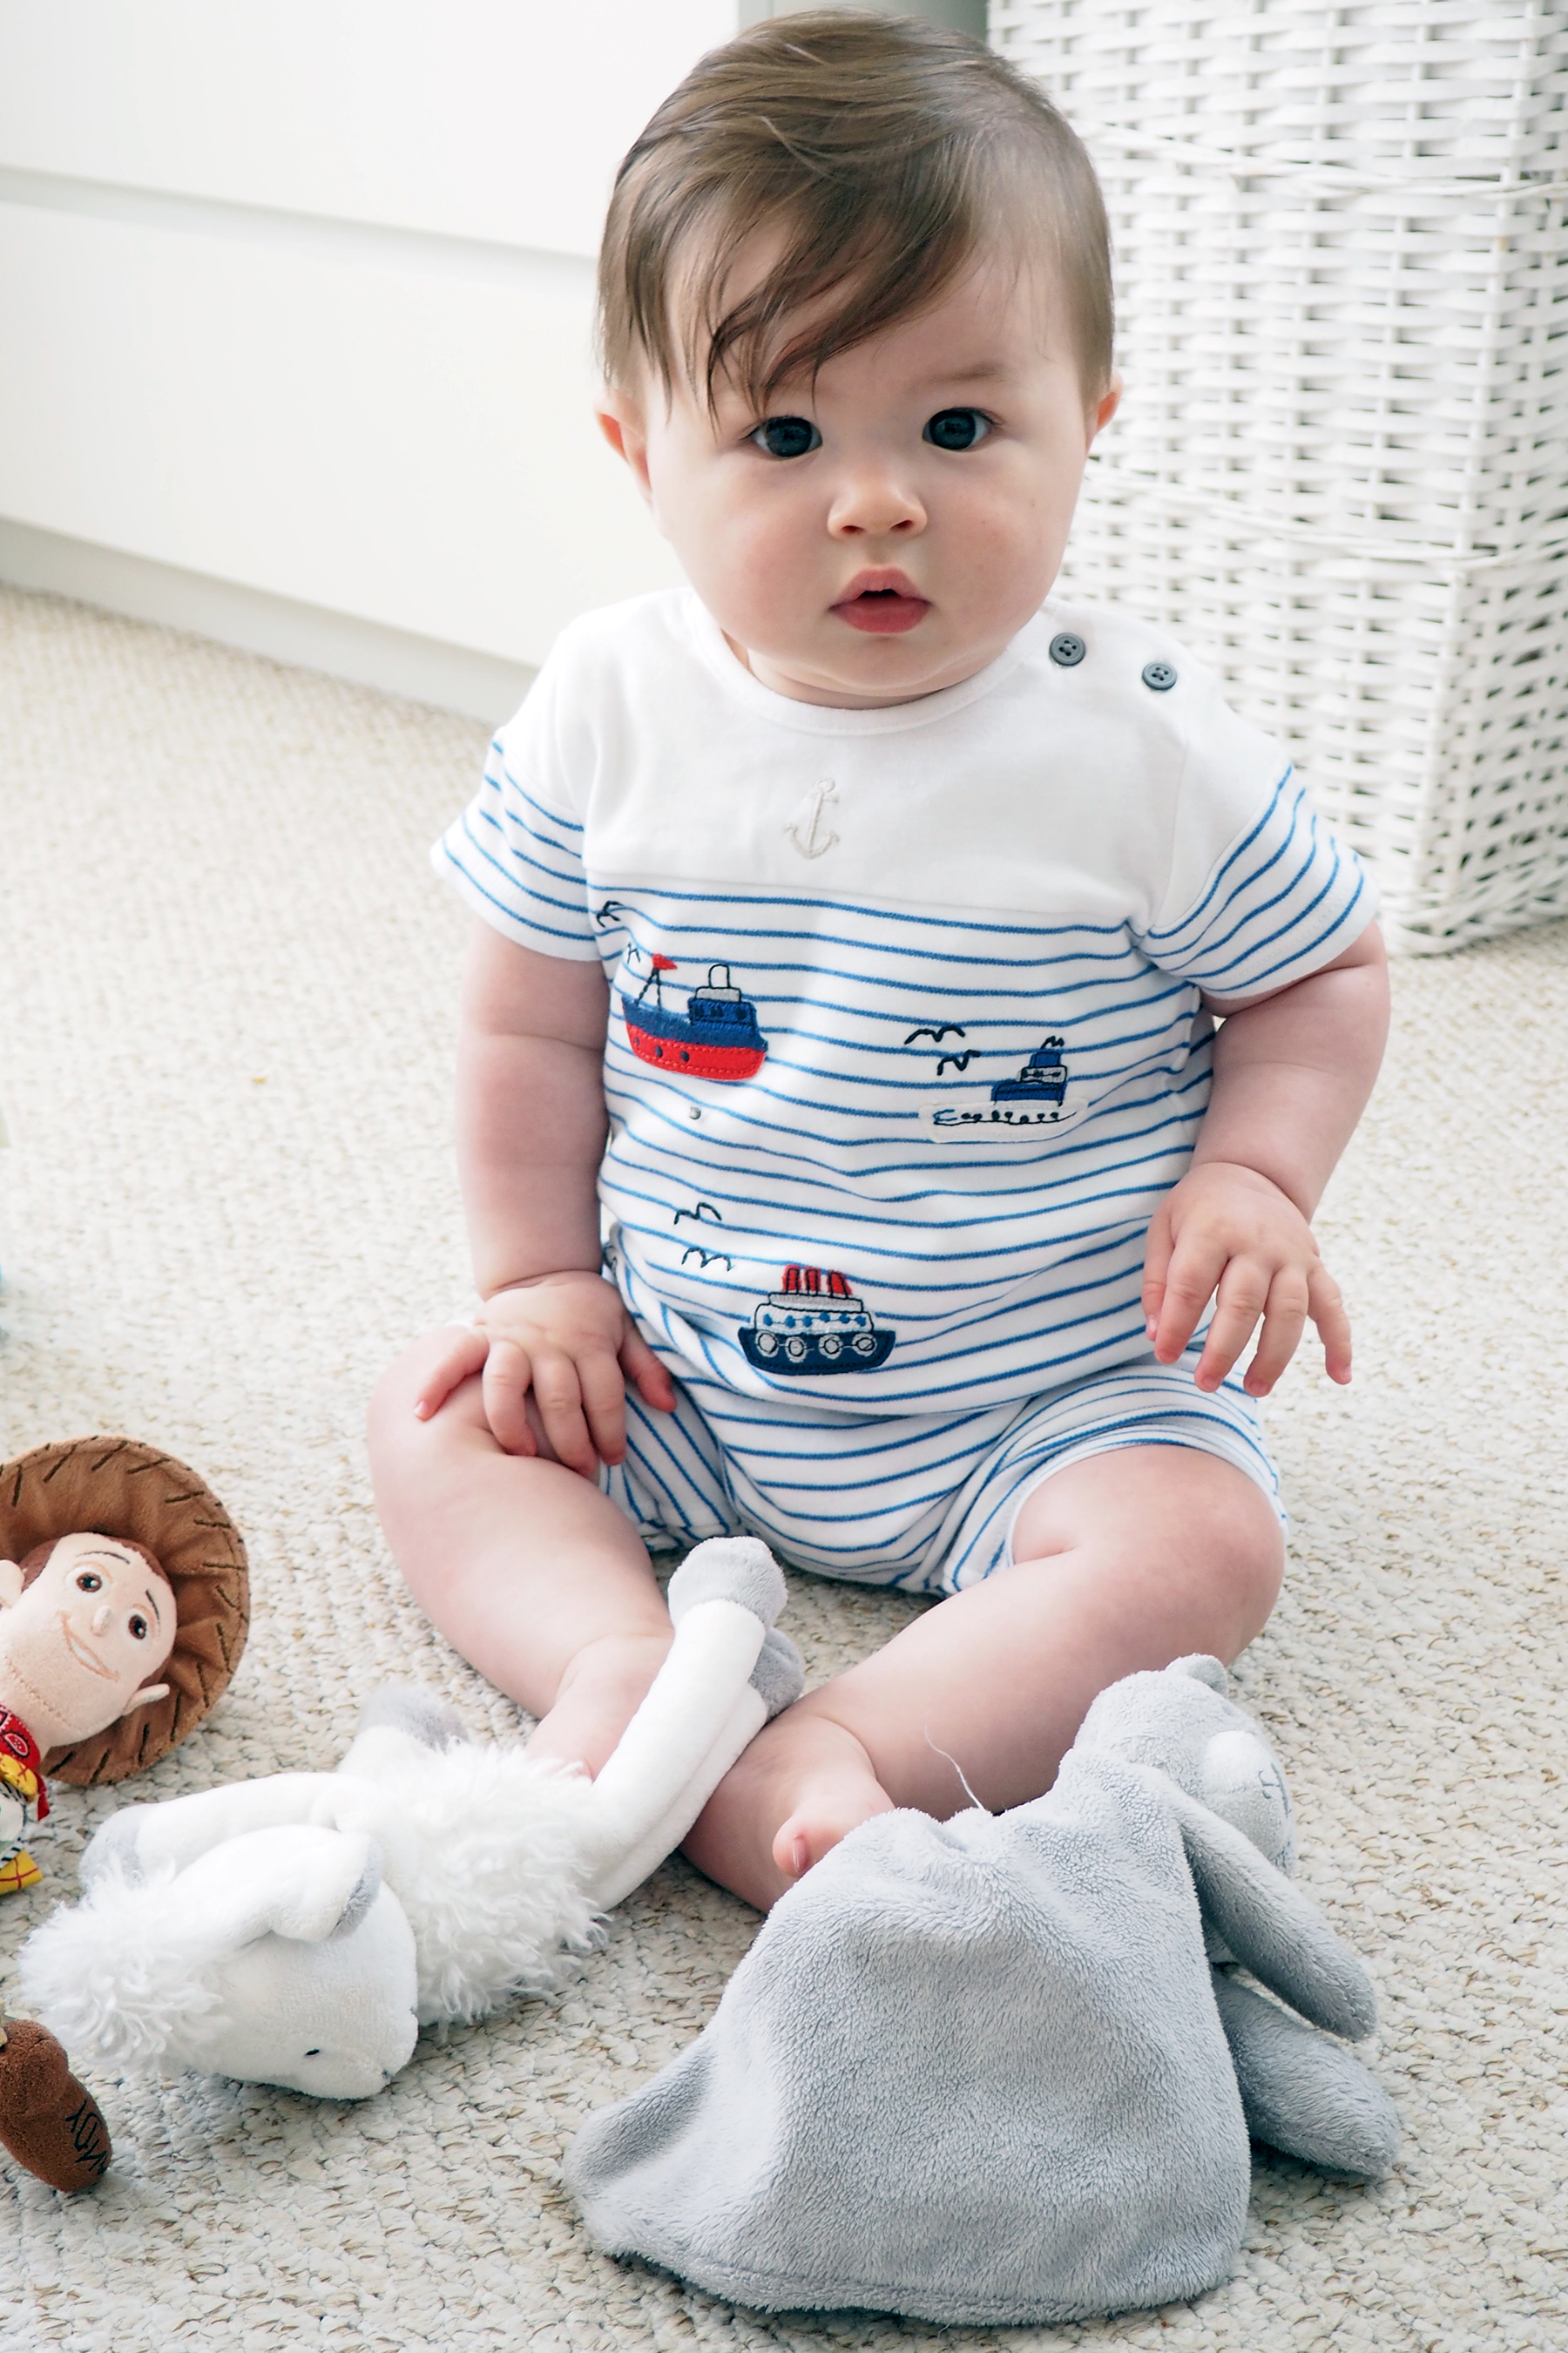 7 George's 6 month Update